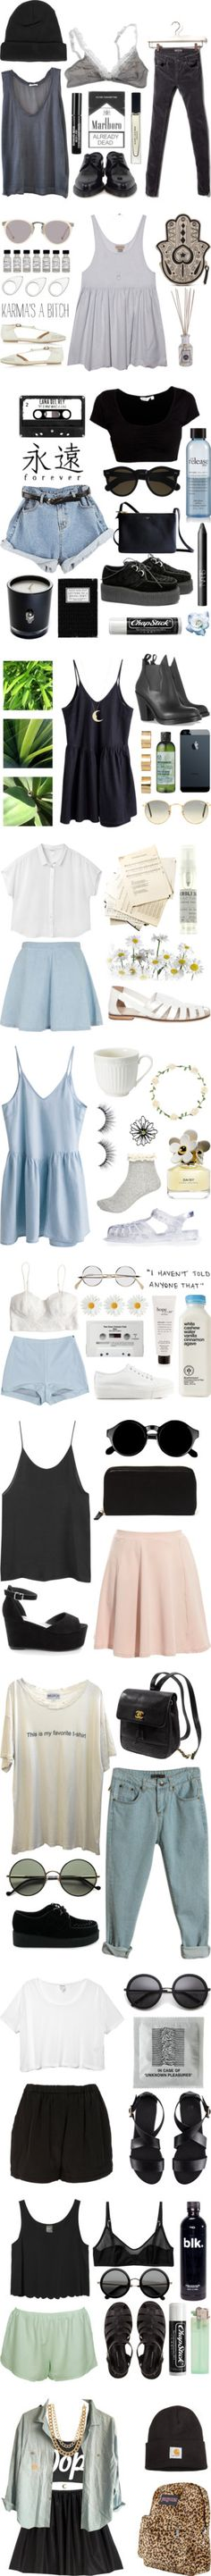 """outfits I'd wear"" by twerk ❤ liked on Polyvore"